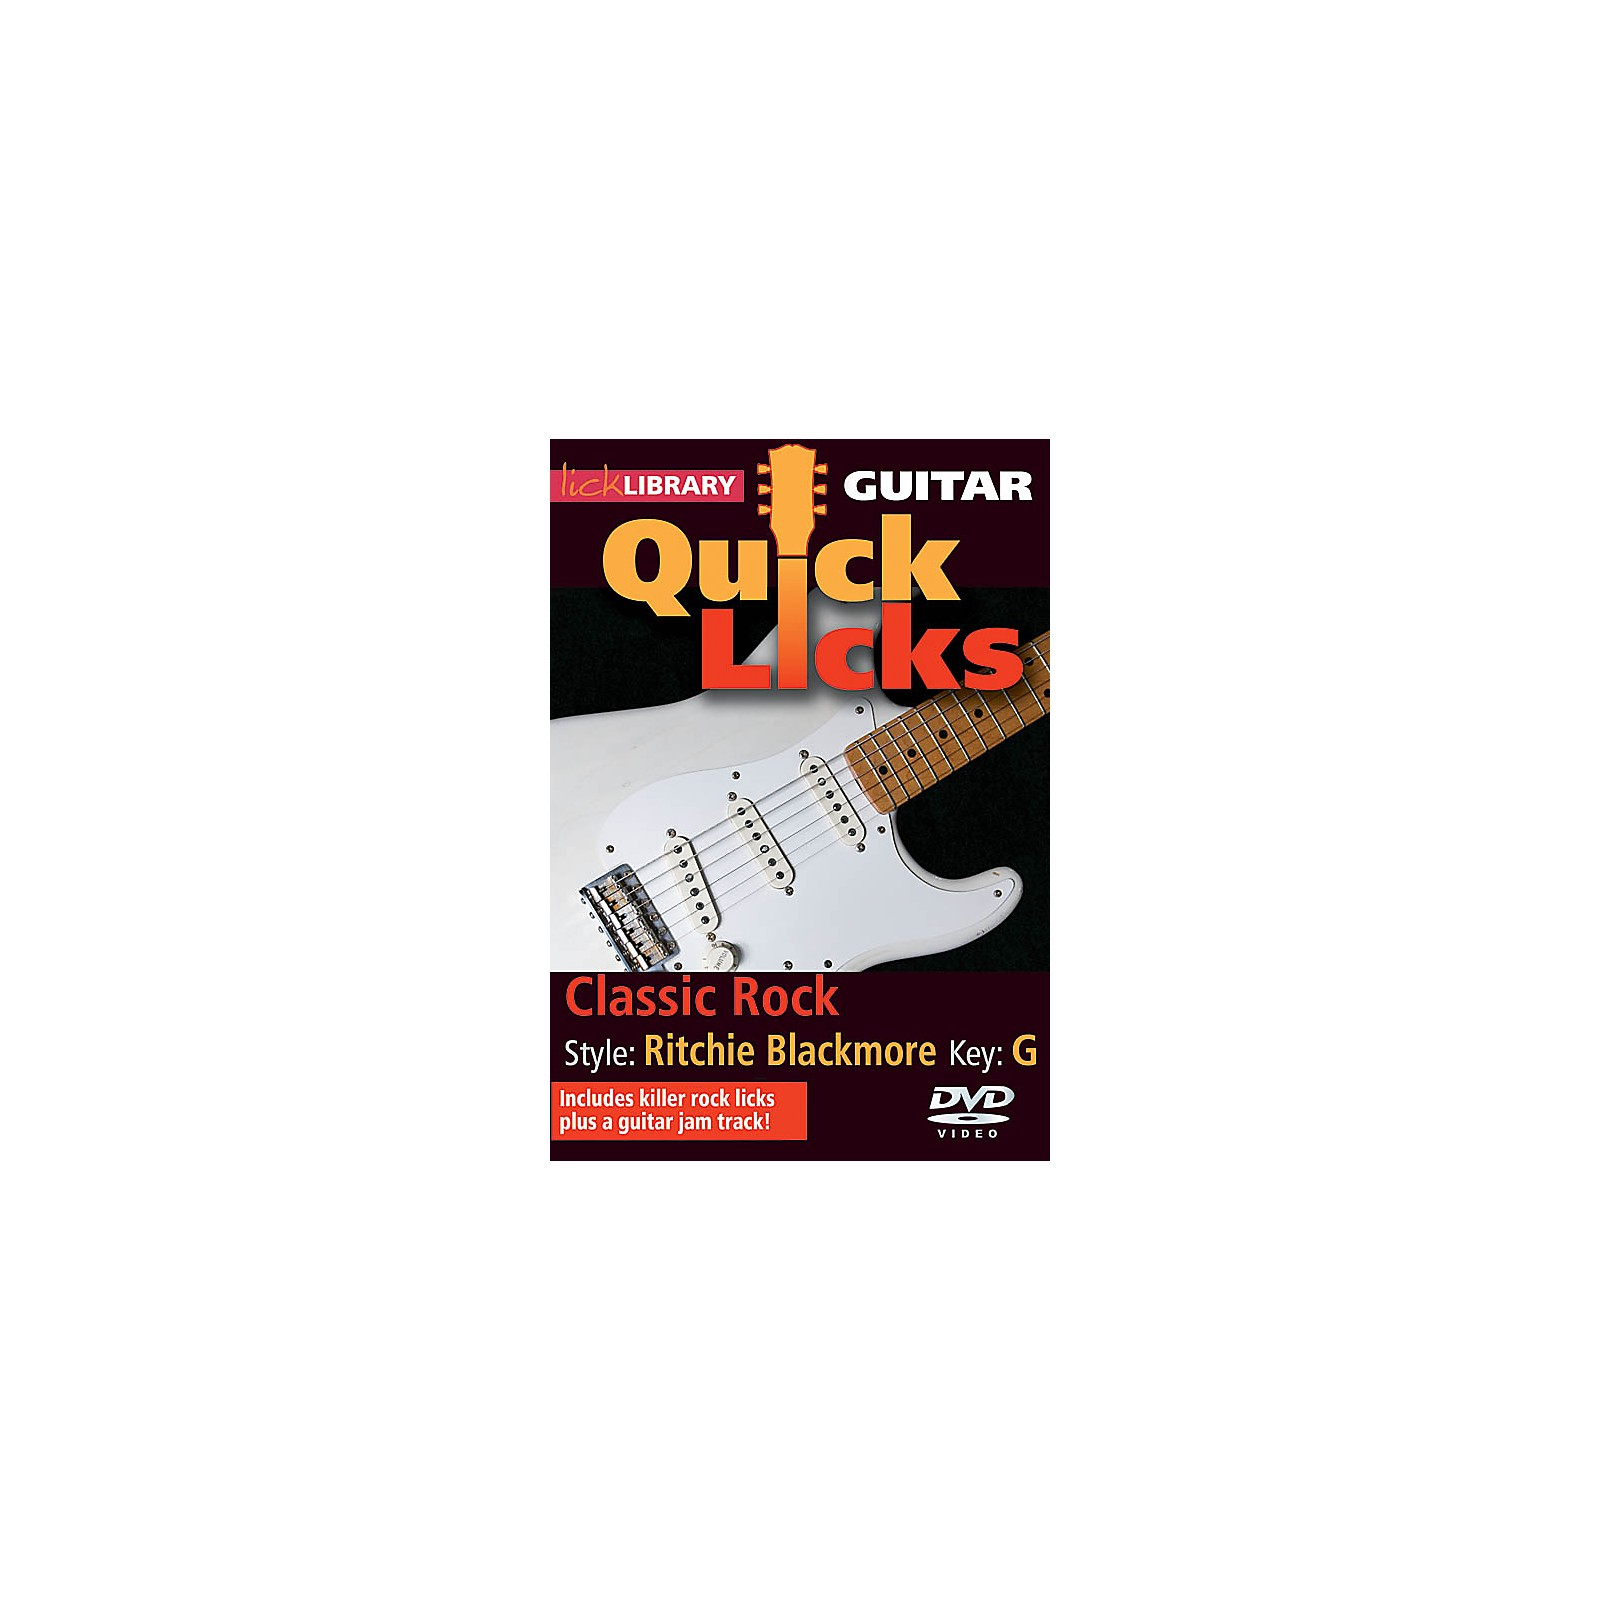 Licklibrary Classic Rock - Quick Licks (Style: Ritchie Blackmore; Key: G) Lick Library Series DVD by Danny Gill